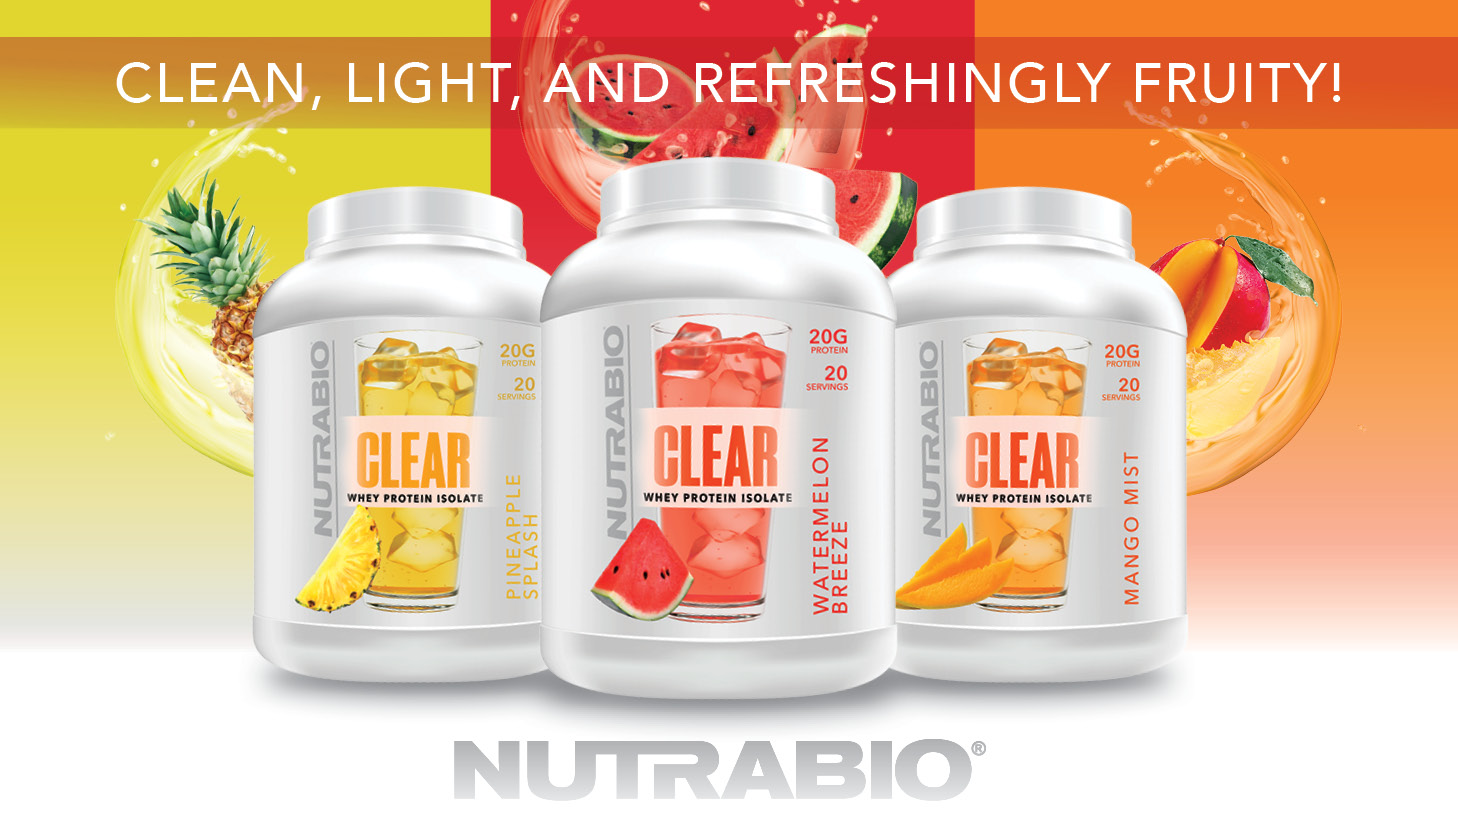 NutraBio Clear Whey Protein Isolate - Light, Refreshing, and Fruity!